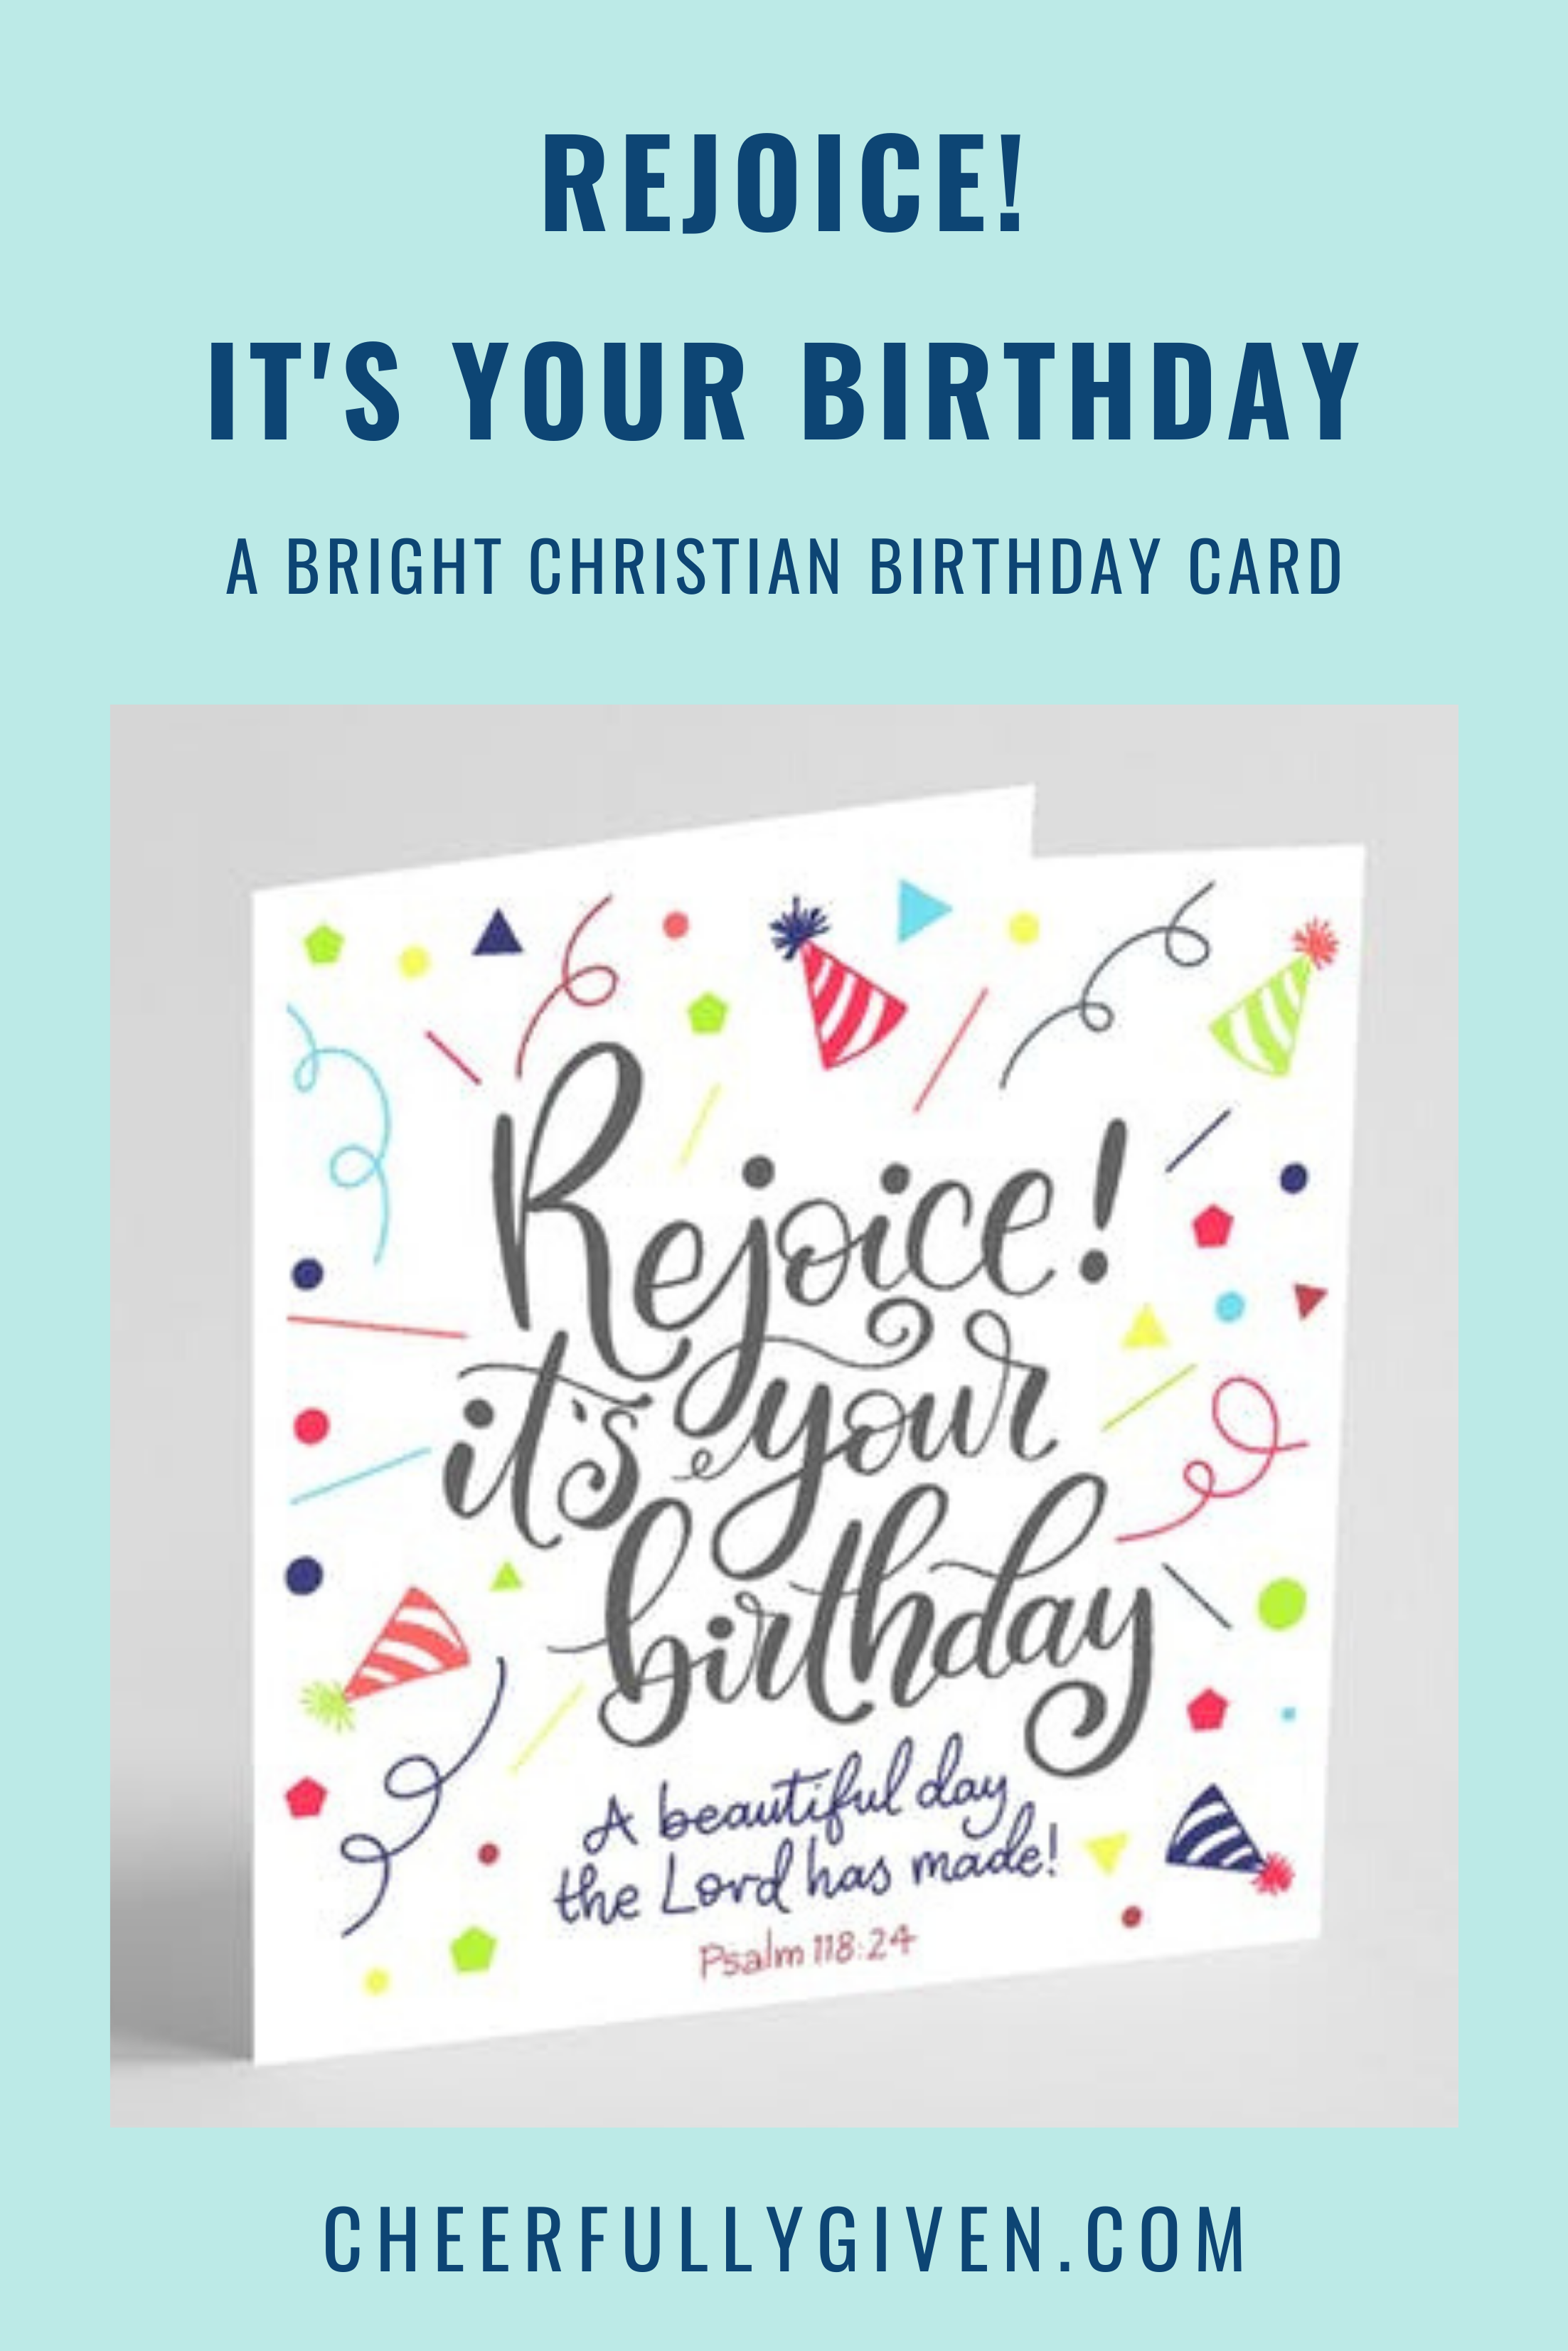 Rejoice It S Your Birthday Card Free Uk Delivery Cheerfully Given Christian Birthday Cards Birthday Cards Christian Cards